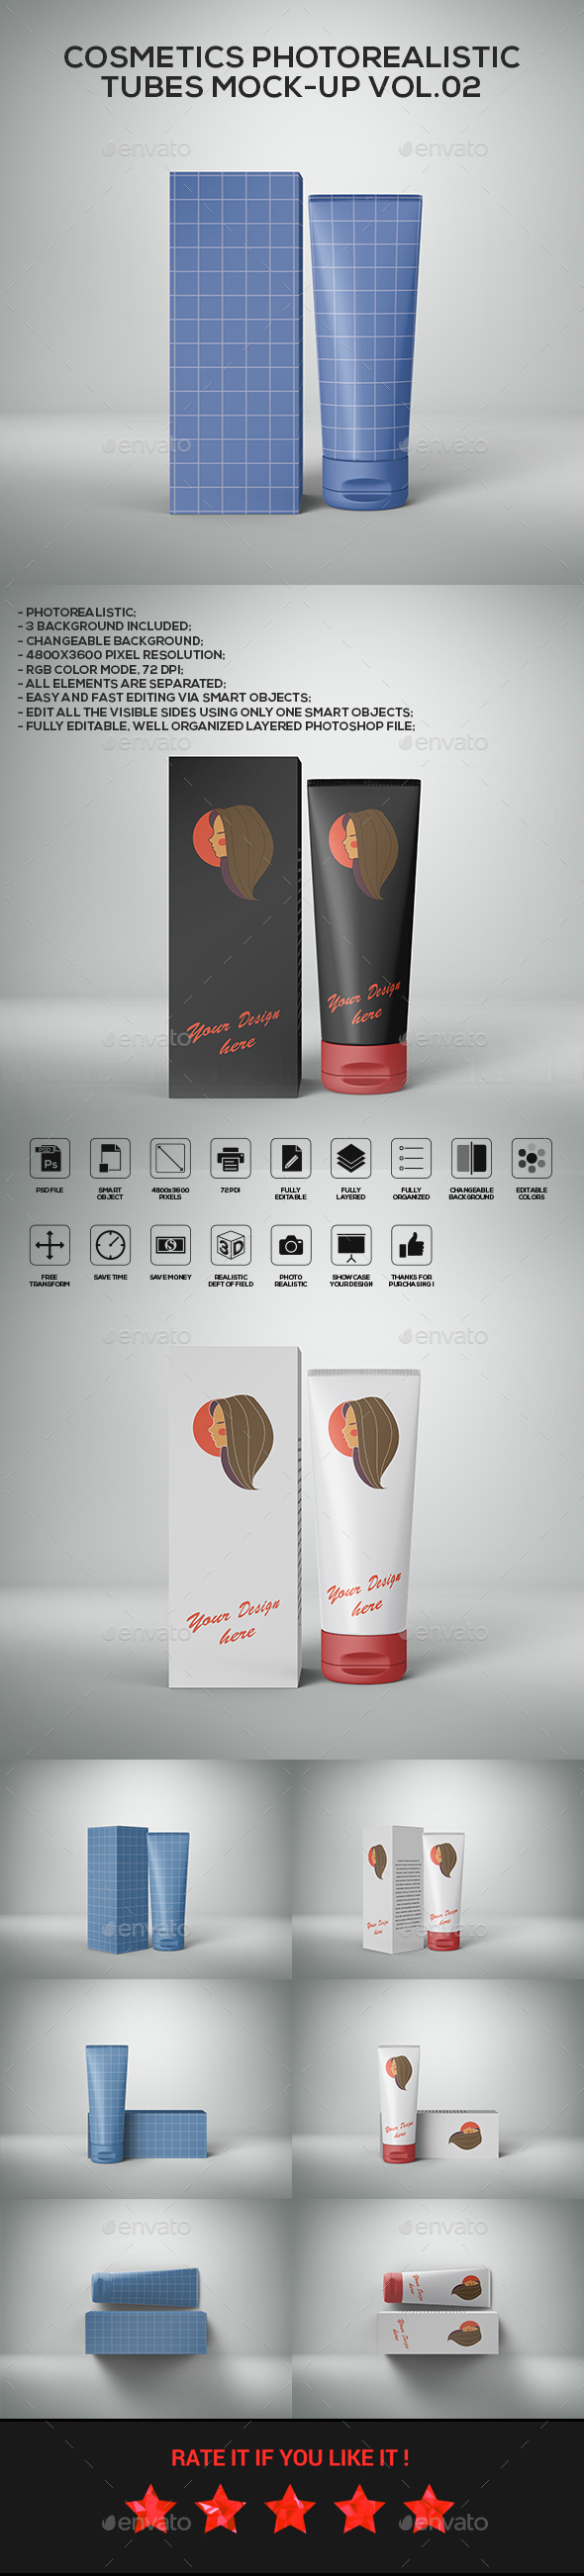 Cosmetics Photorealistic Tubes Mock-Up Vol.02 - Beauty Packaging